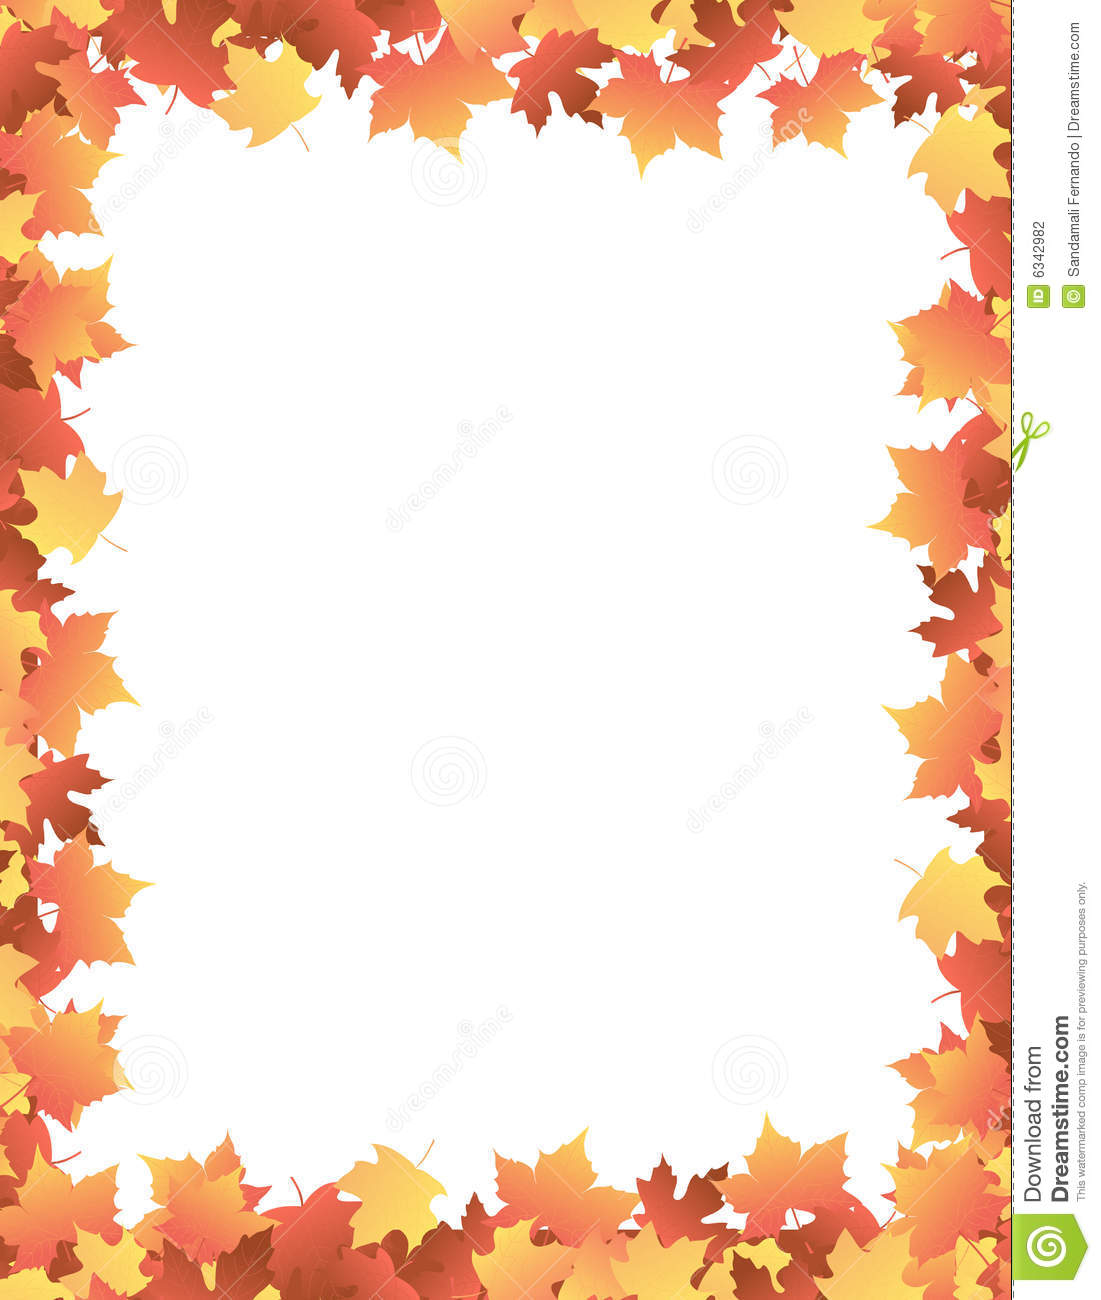 Fall Tree Border Clipart - Clipart Kid